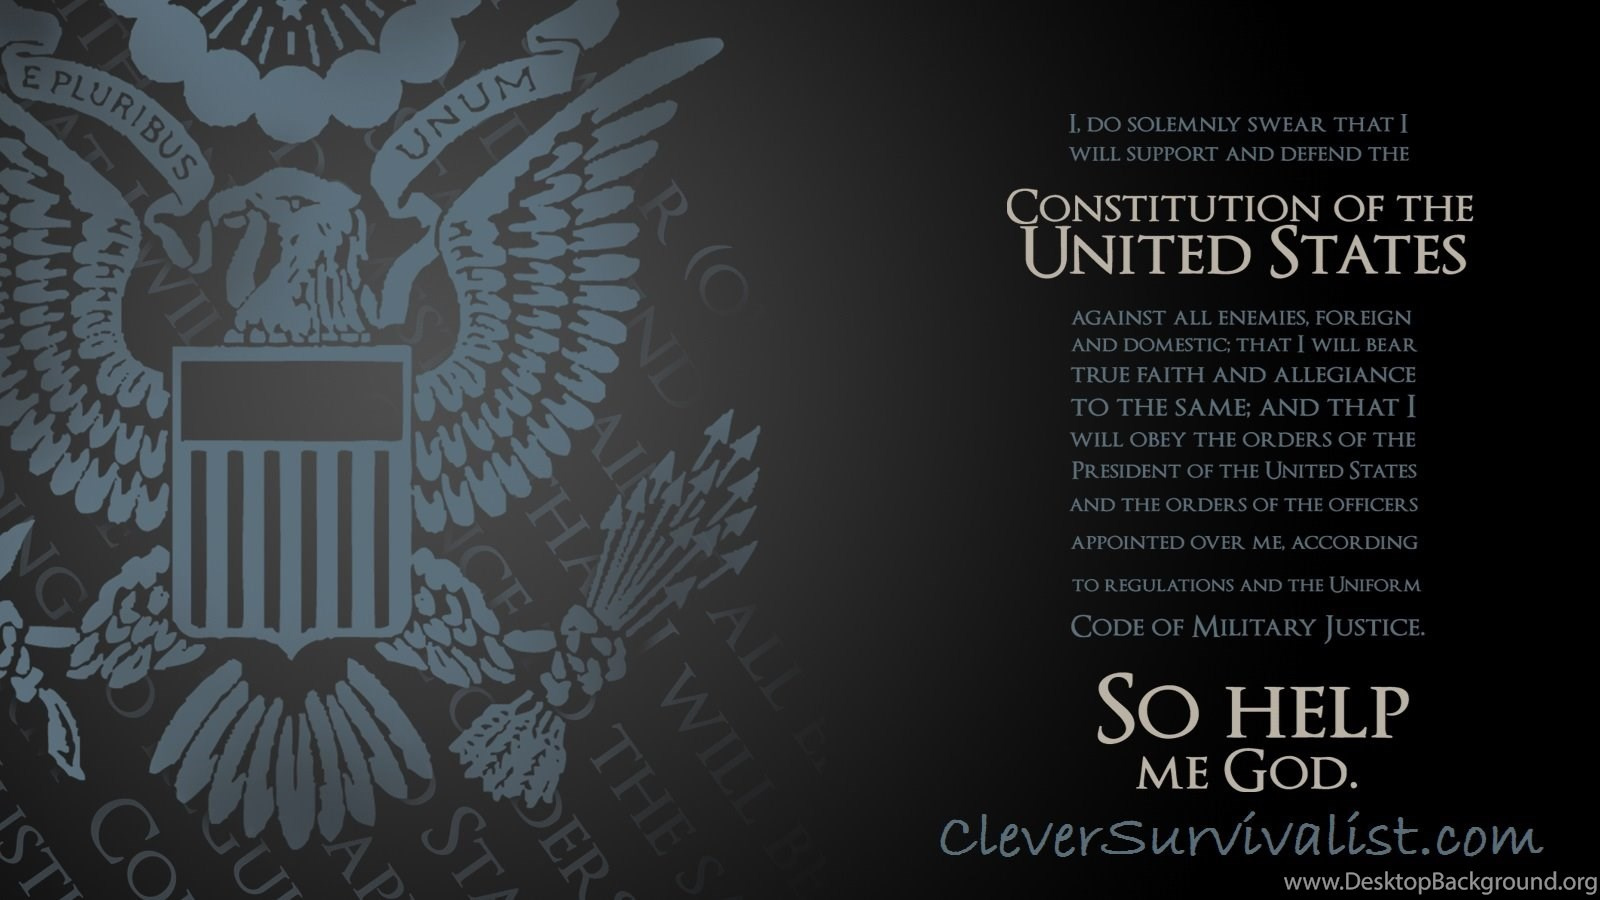 Molon Labe Screensaver Image Gallery Photonesta Desktop Background